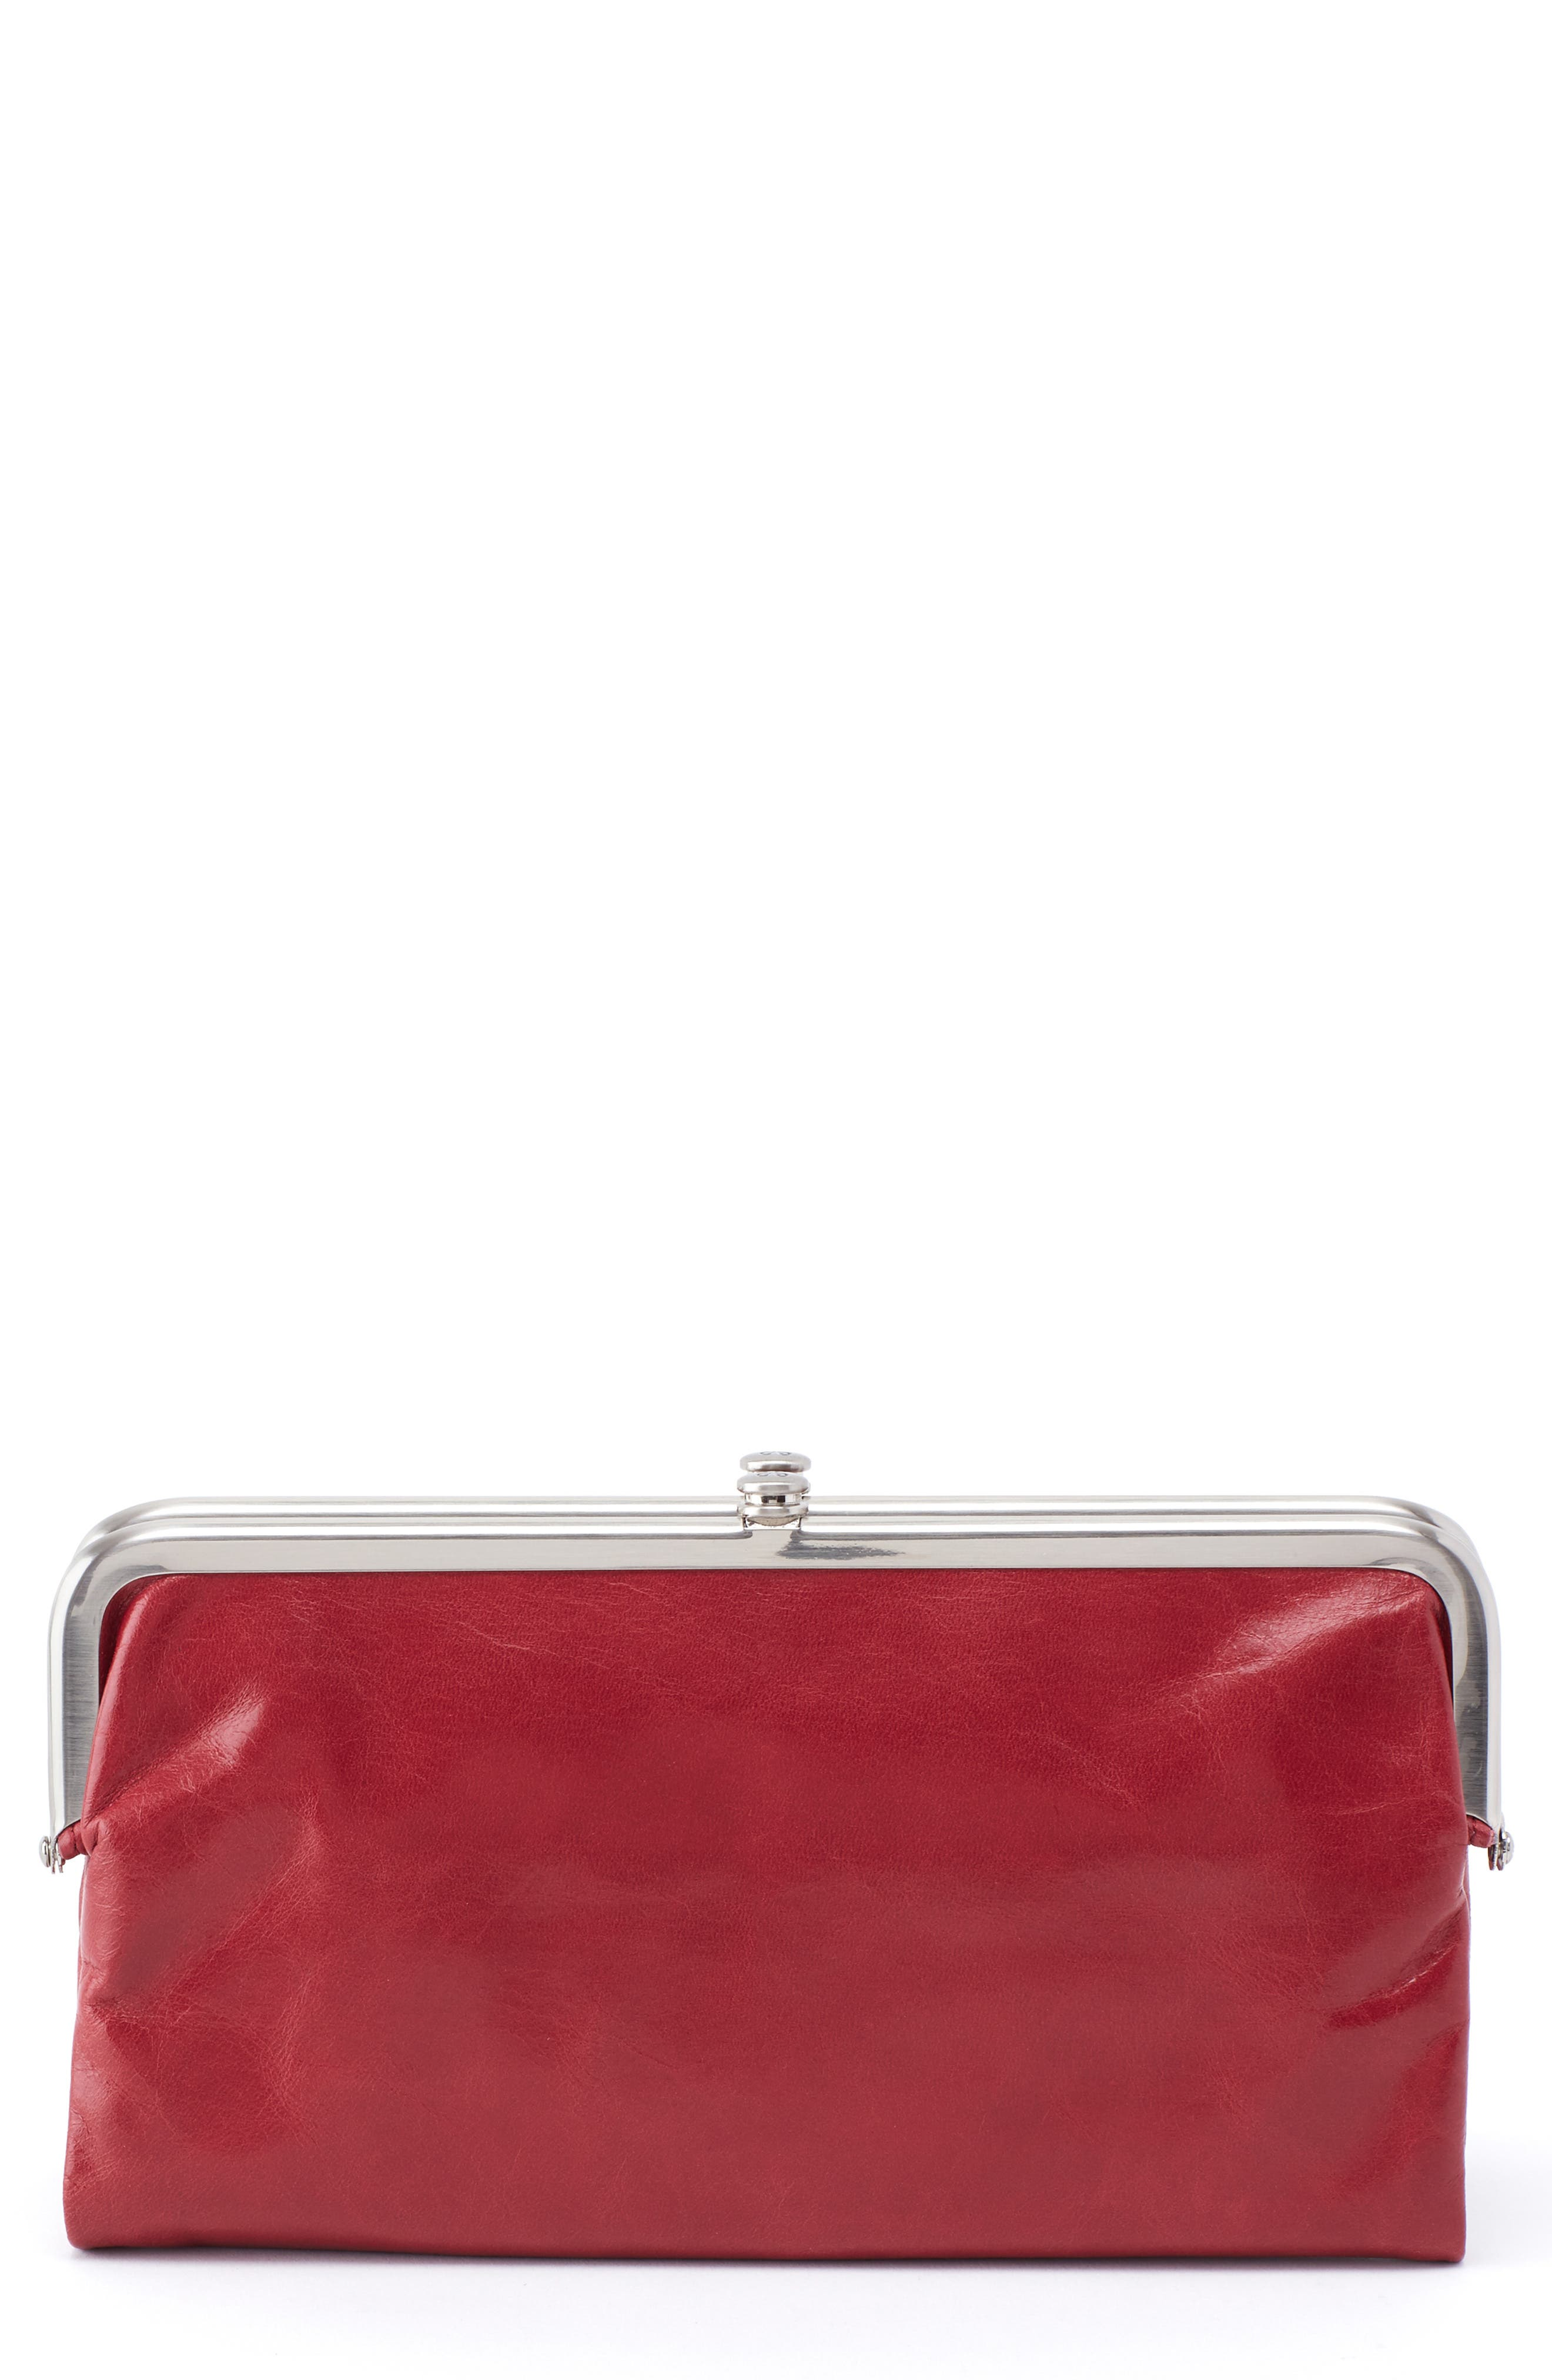 2502bfeddc6 Clutches & Pouches | Nordstrom